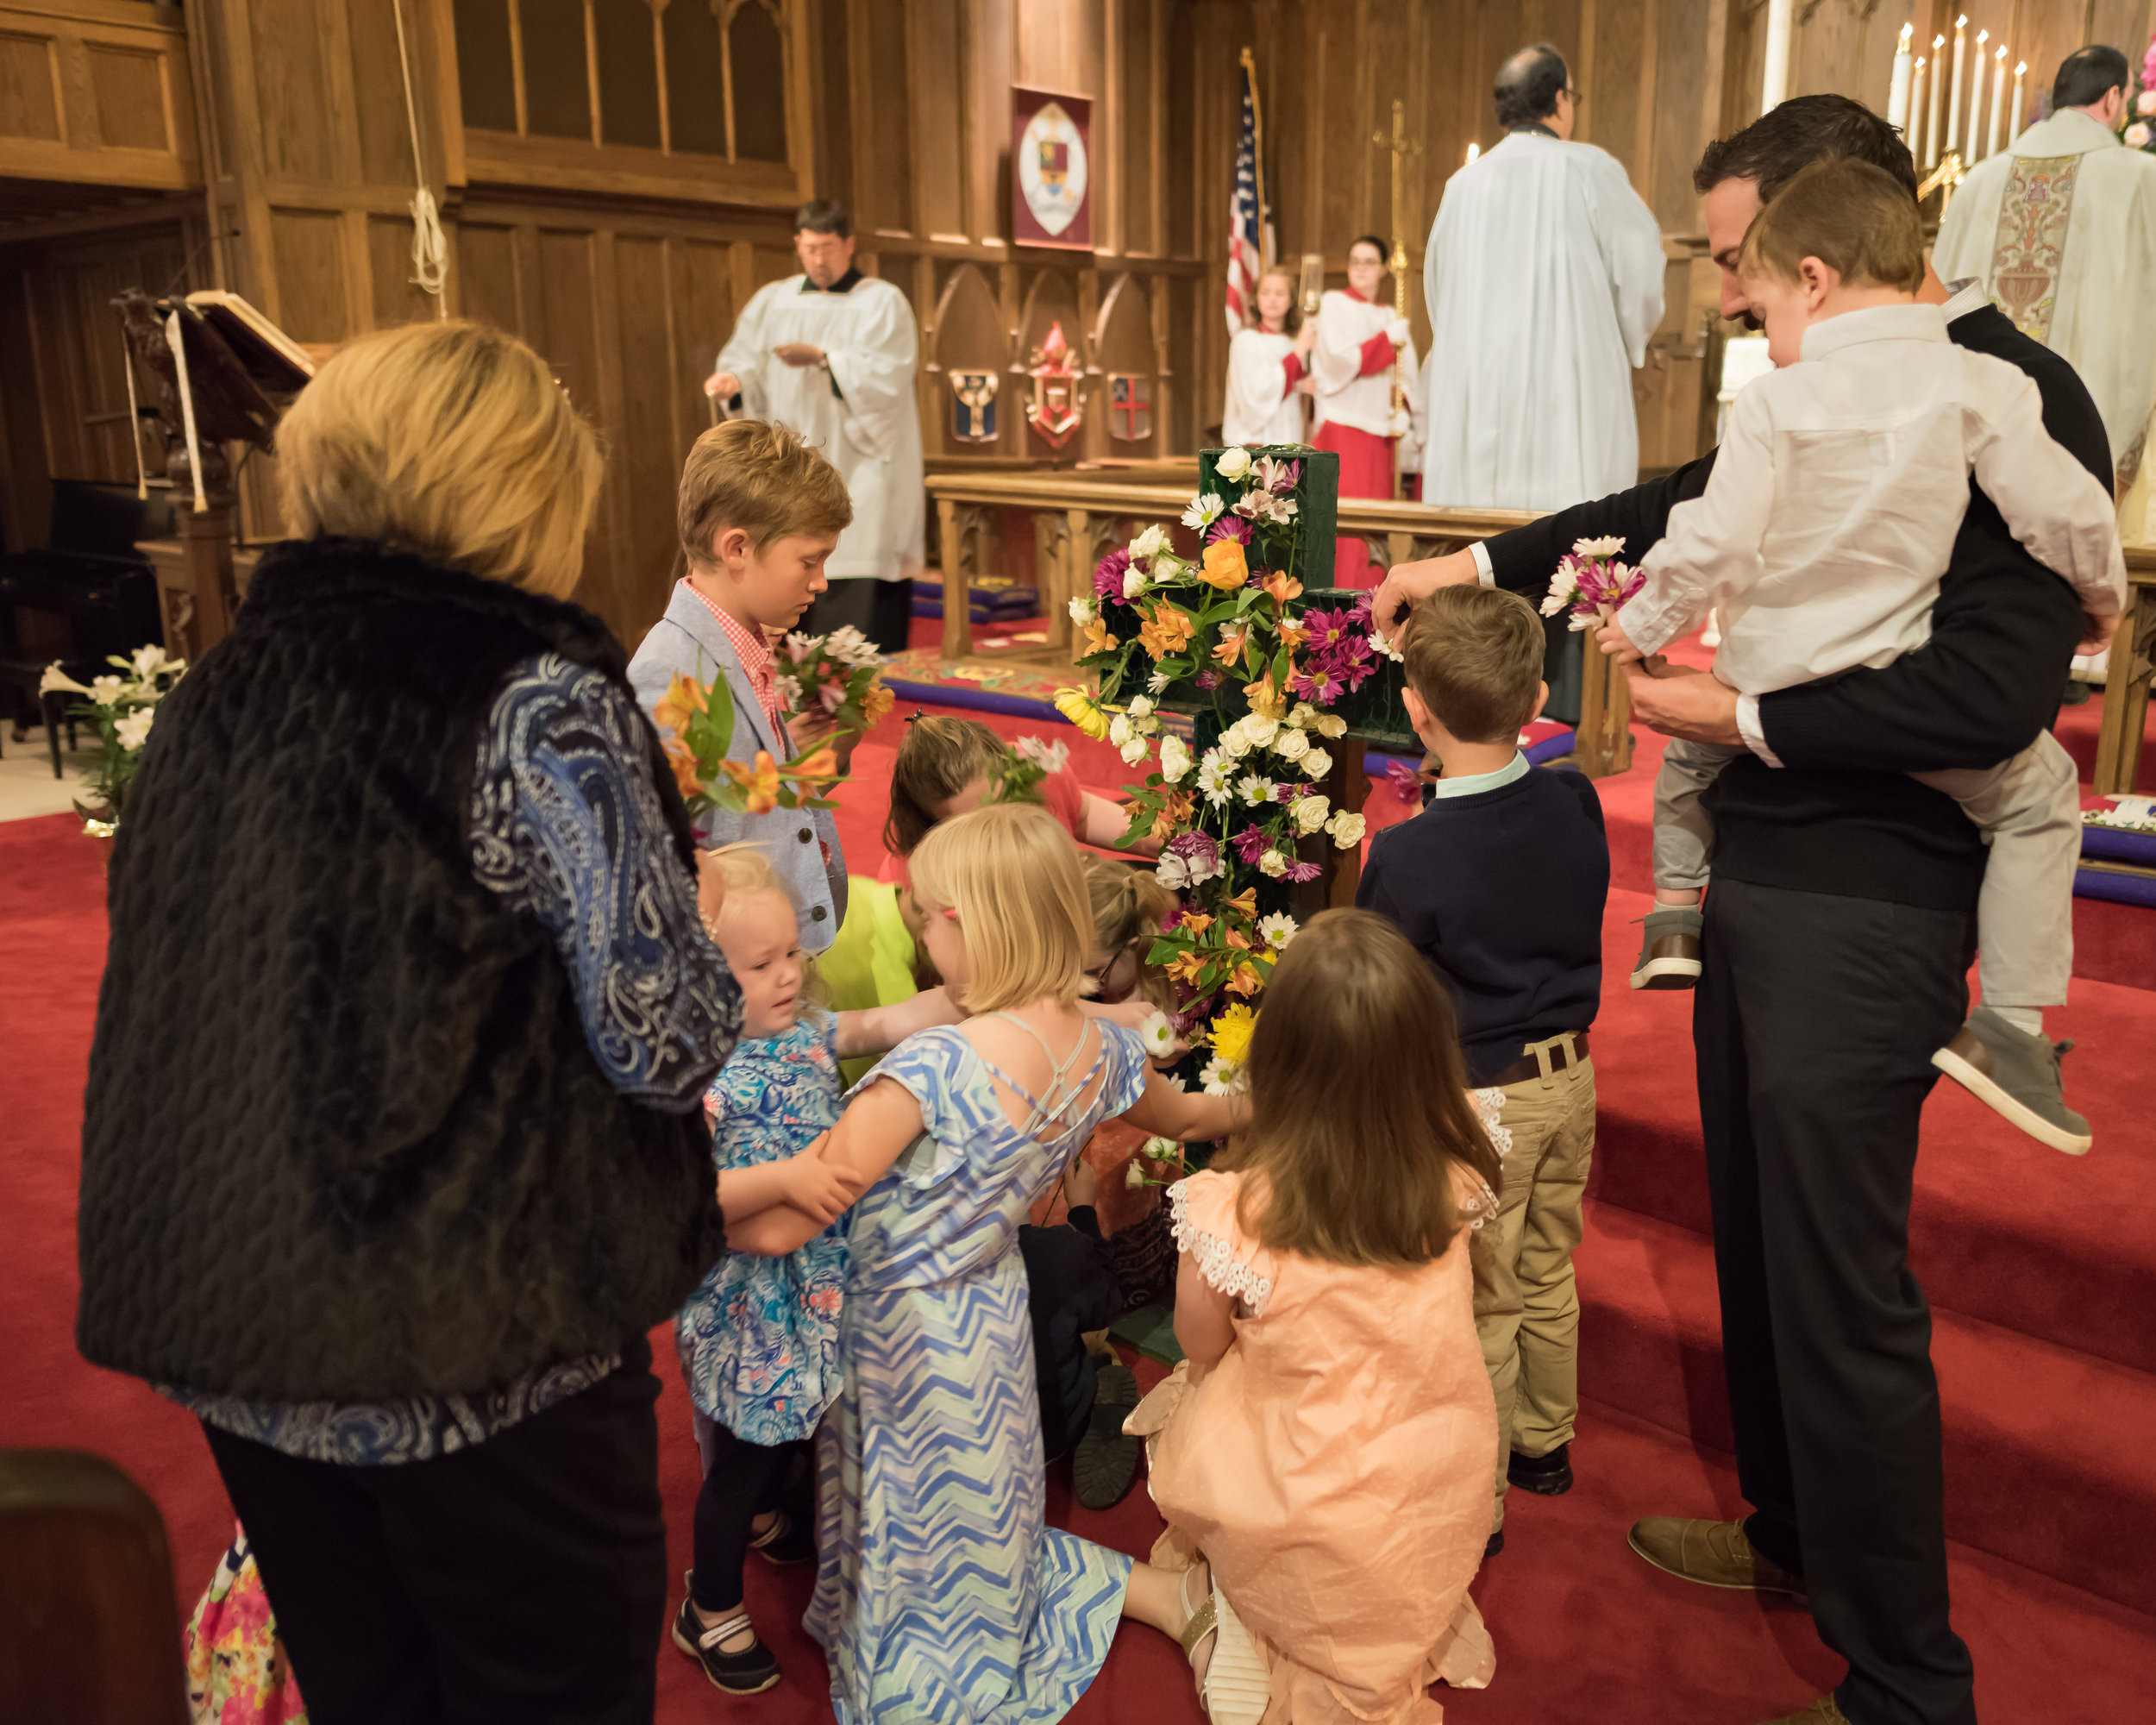 The Flowering of the Cross